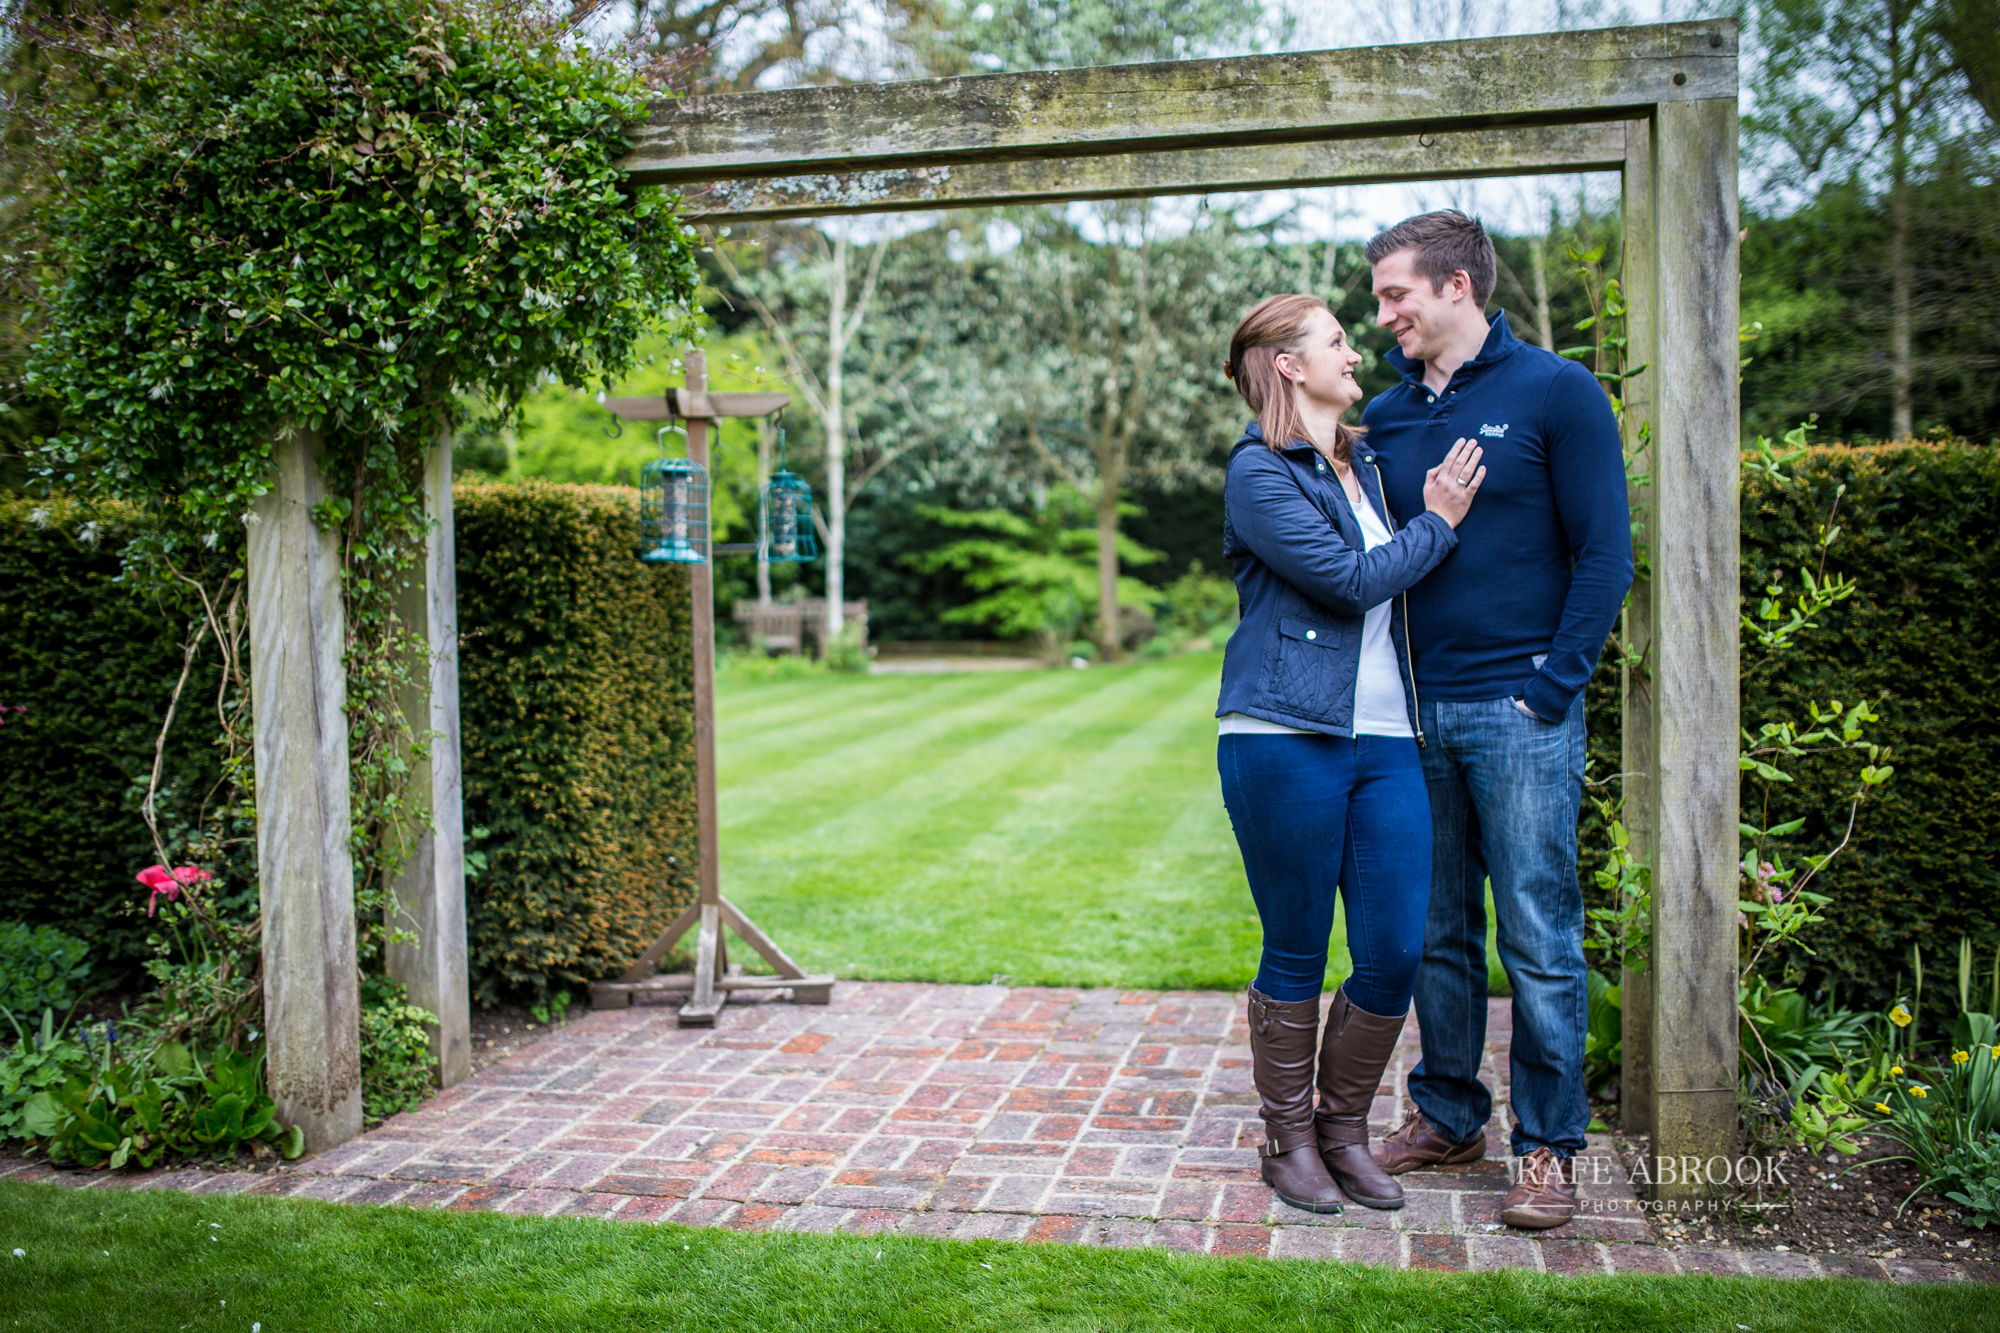 george & amelia heartwood forest st albans hertfordshire engagement shoot-1004.jpg